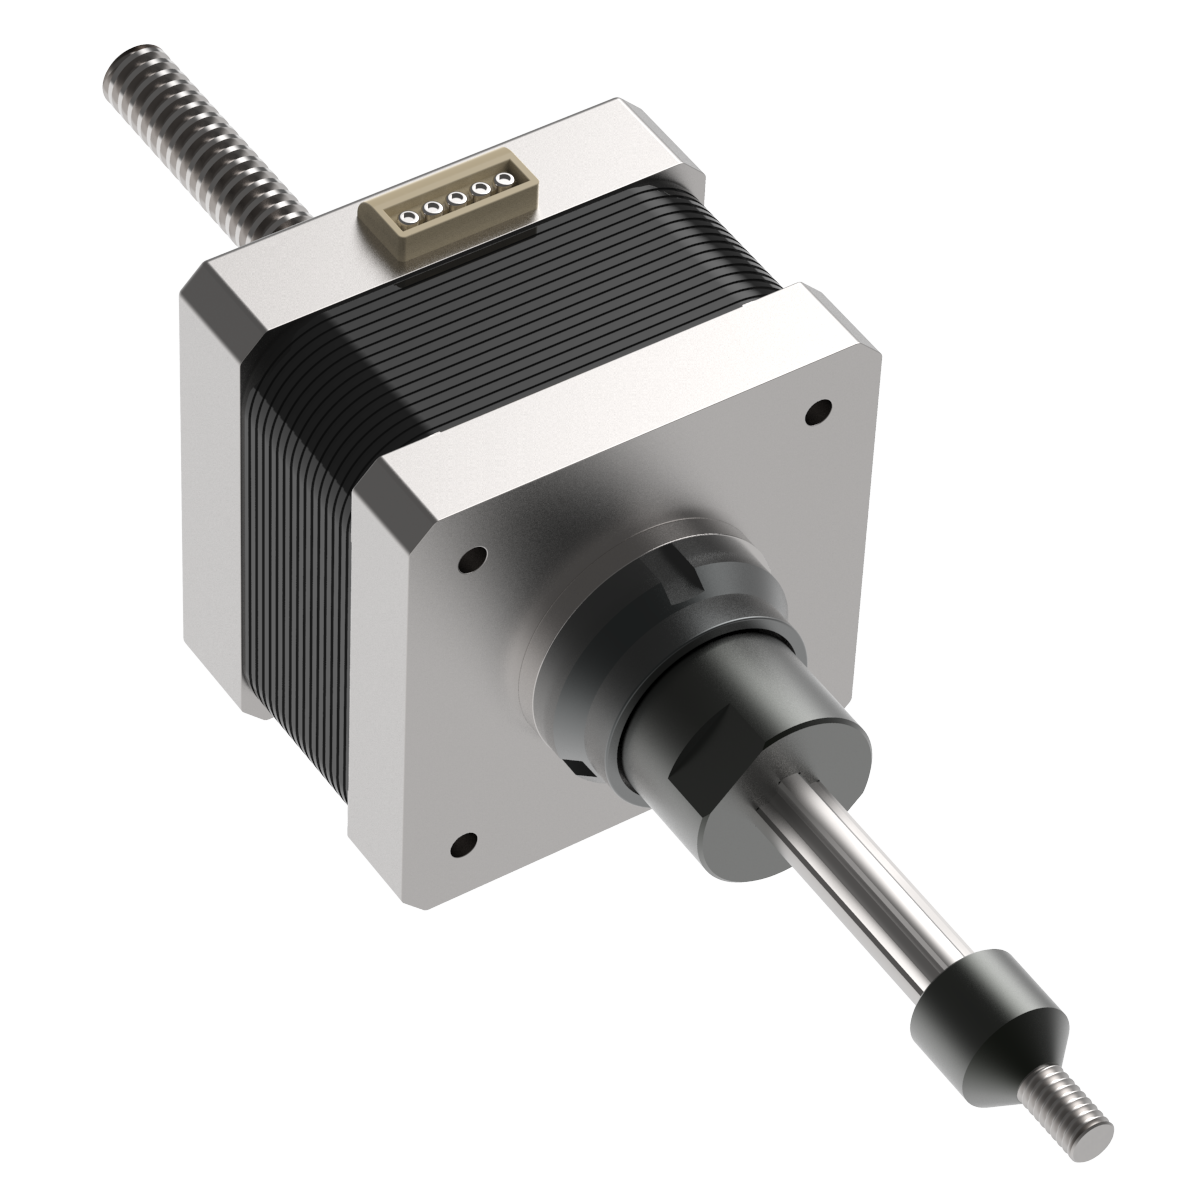 Captive Stepper Actuator